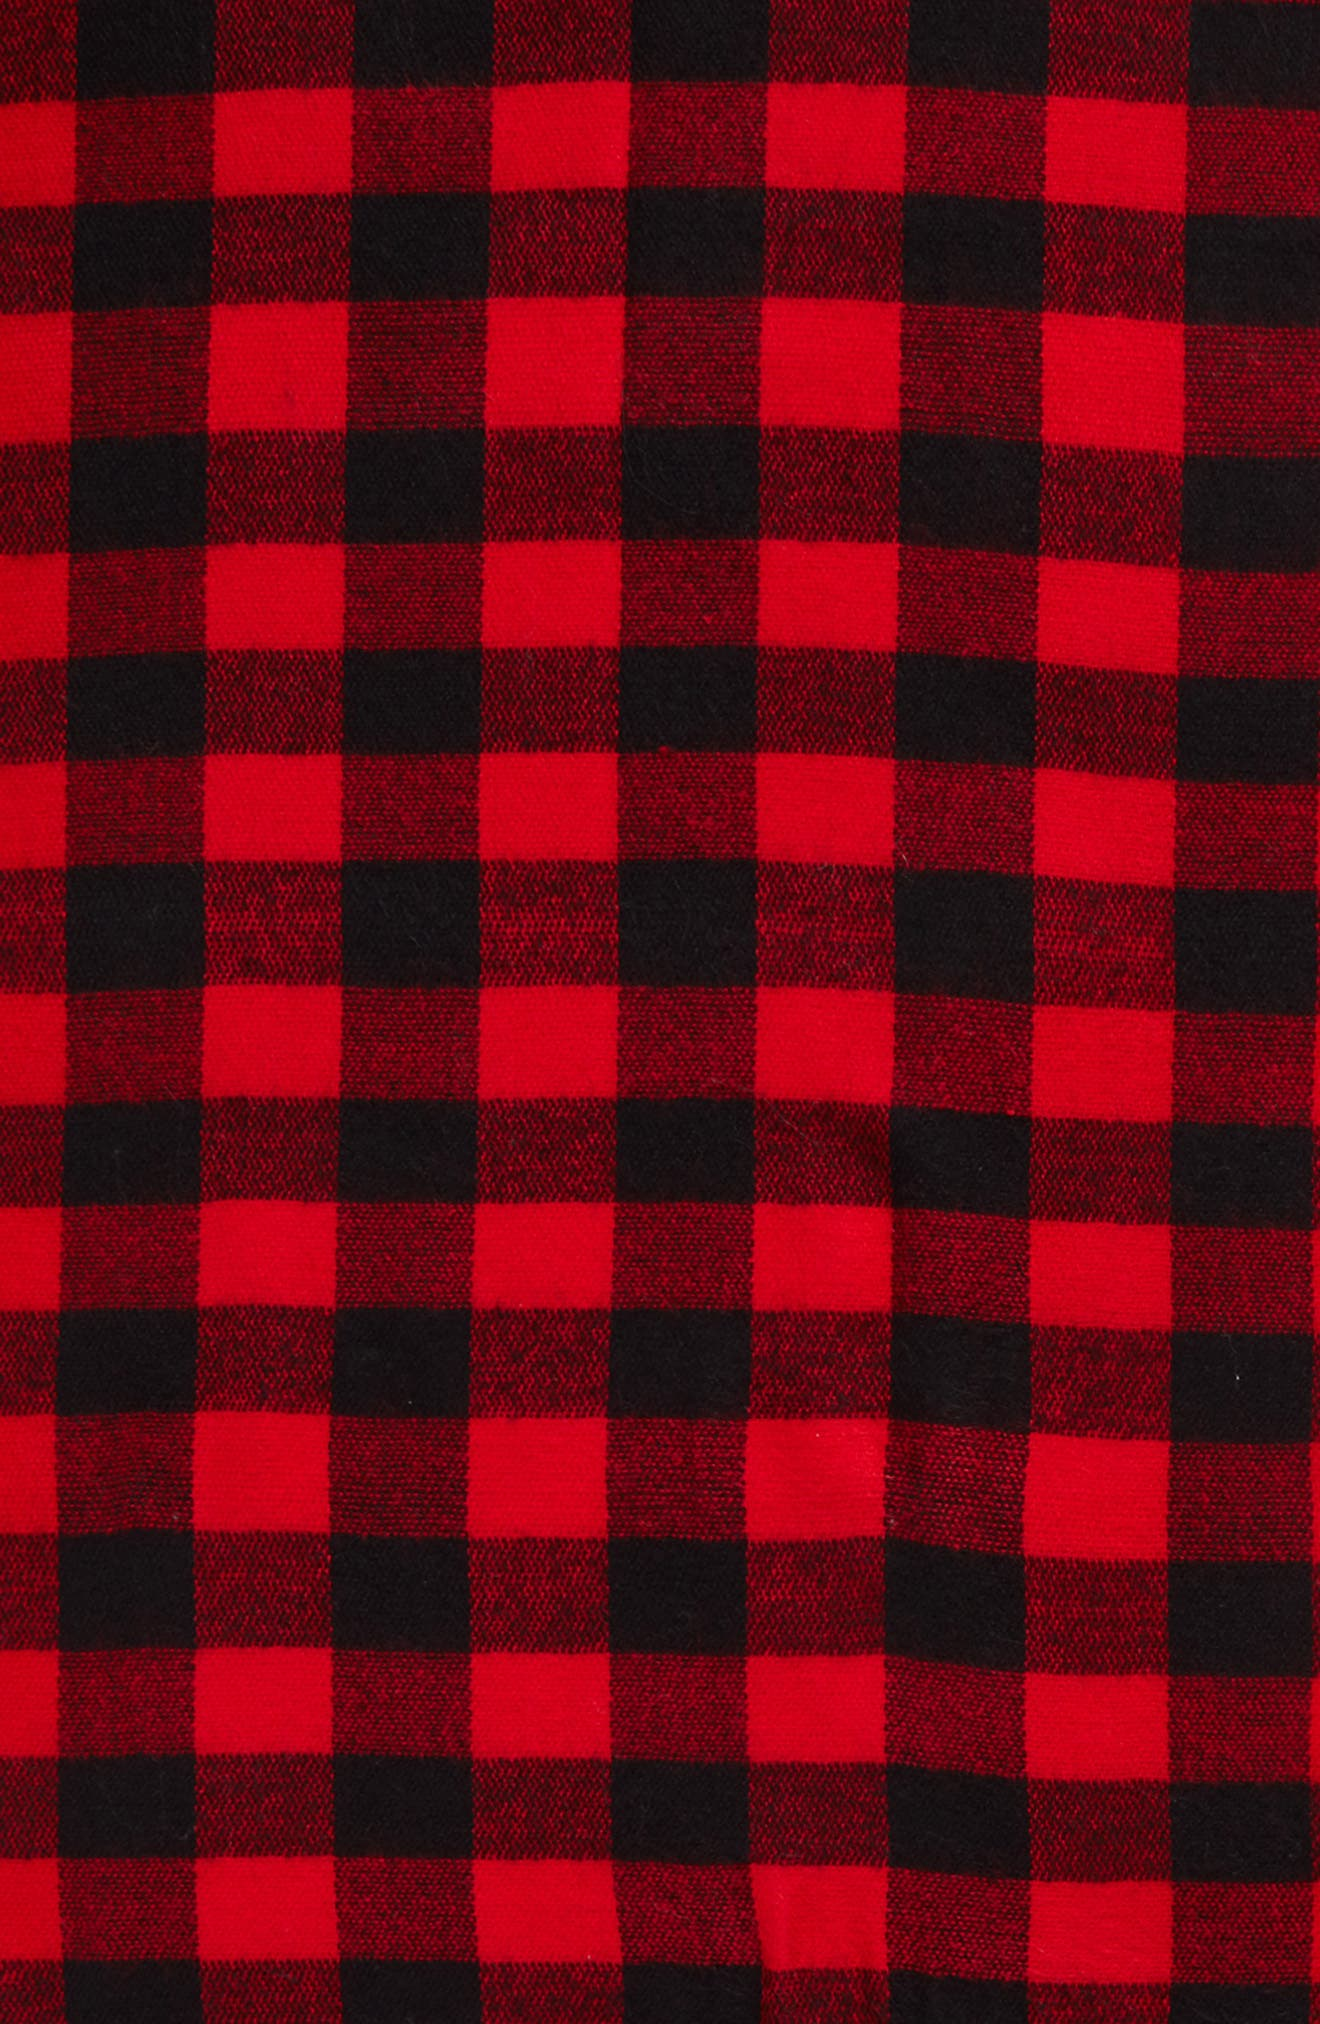 Buffalo Plaid Oblong Scarf,                             Alternate thumbnail 4, color,                             Black/ Red